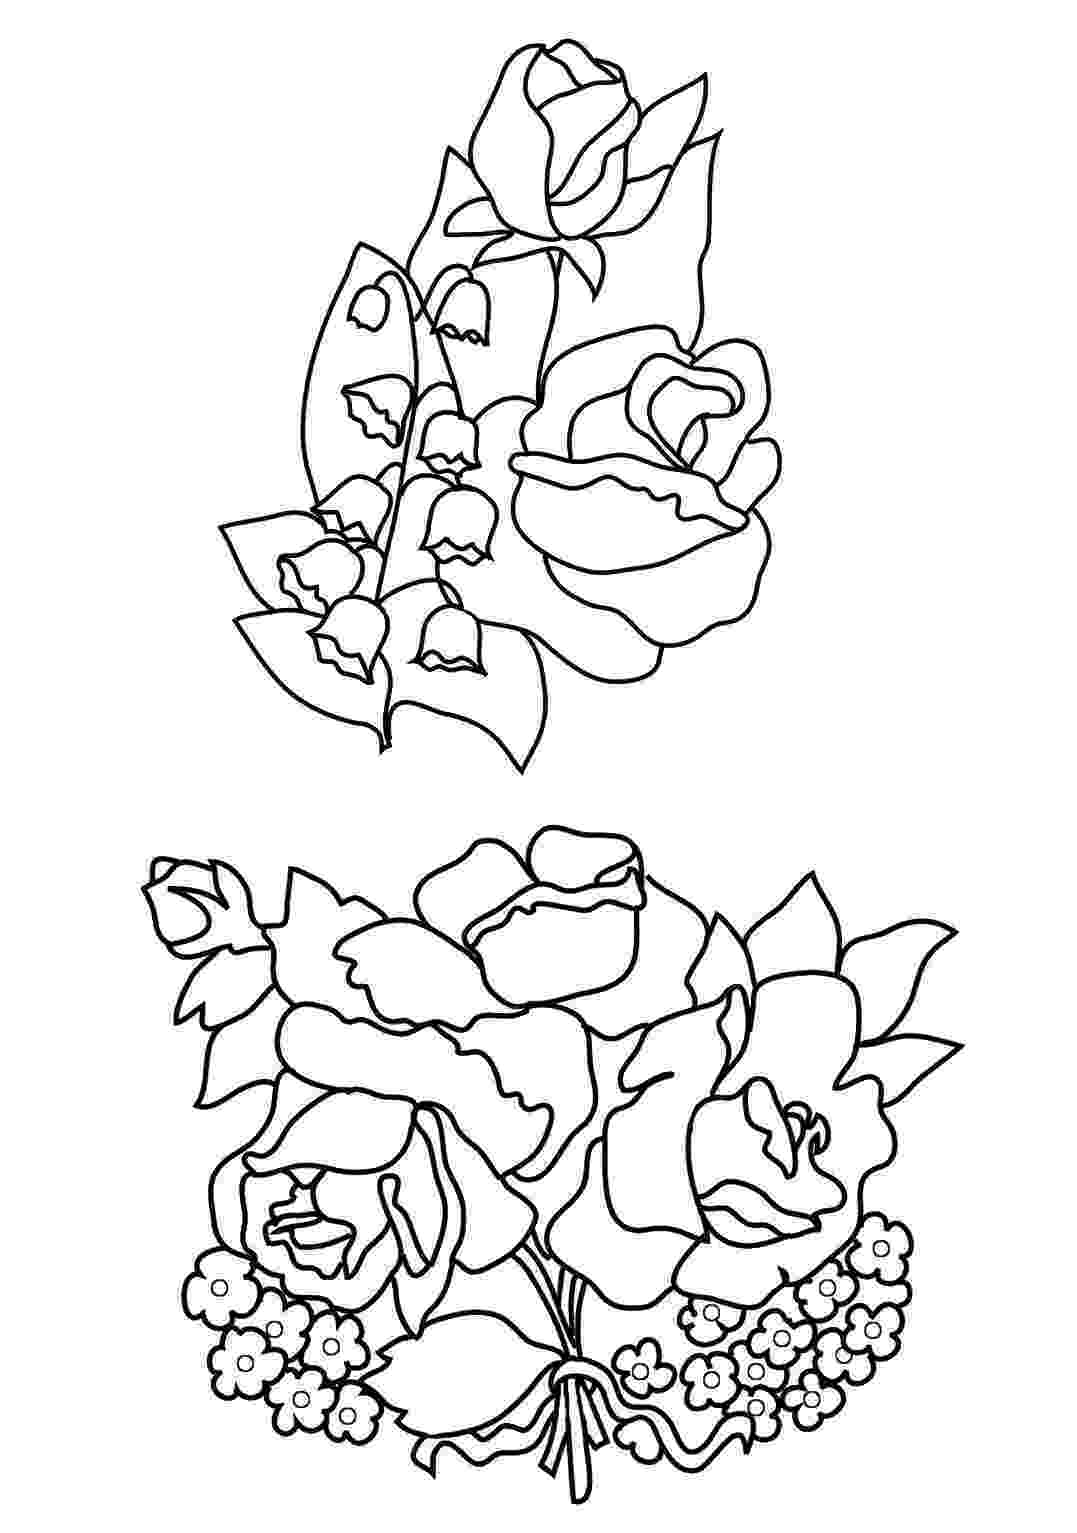 rose flower coloring pages flowers free colouring pages pages rose coloring flower